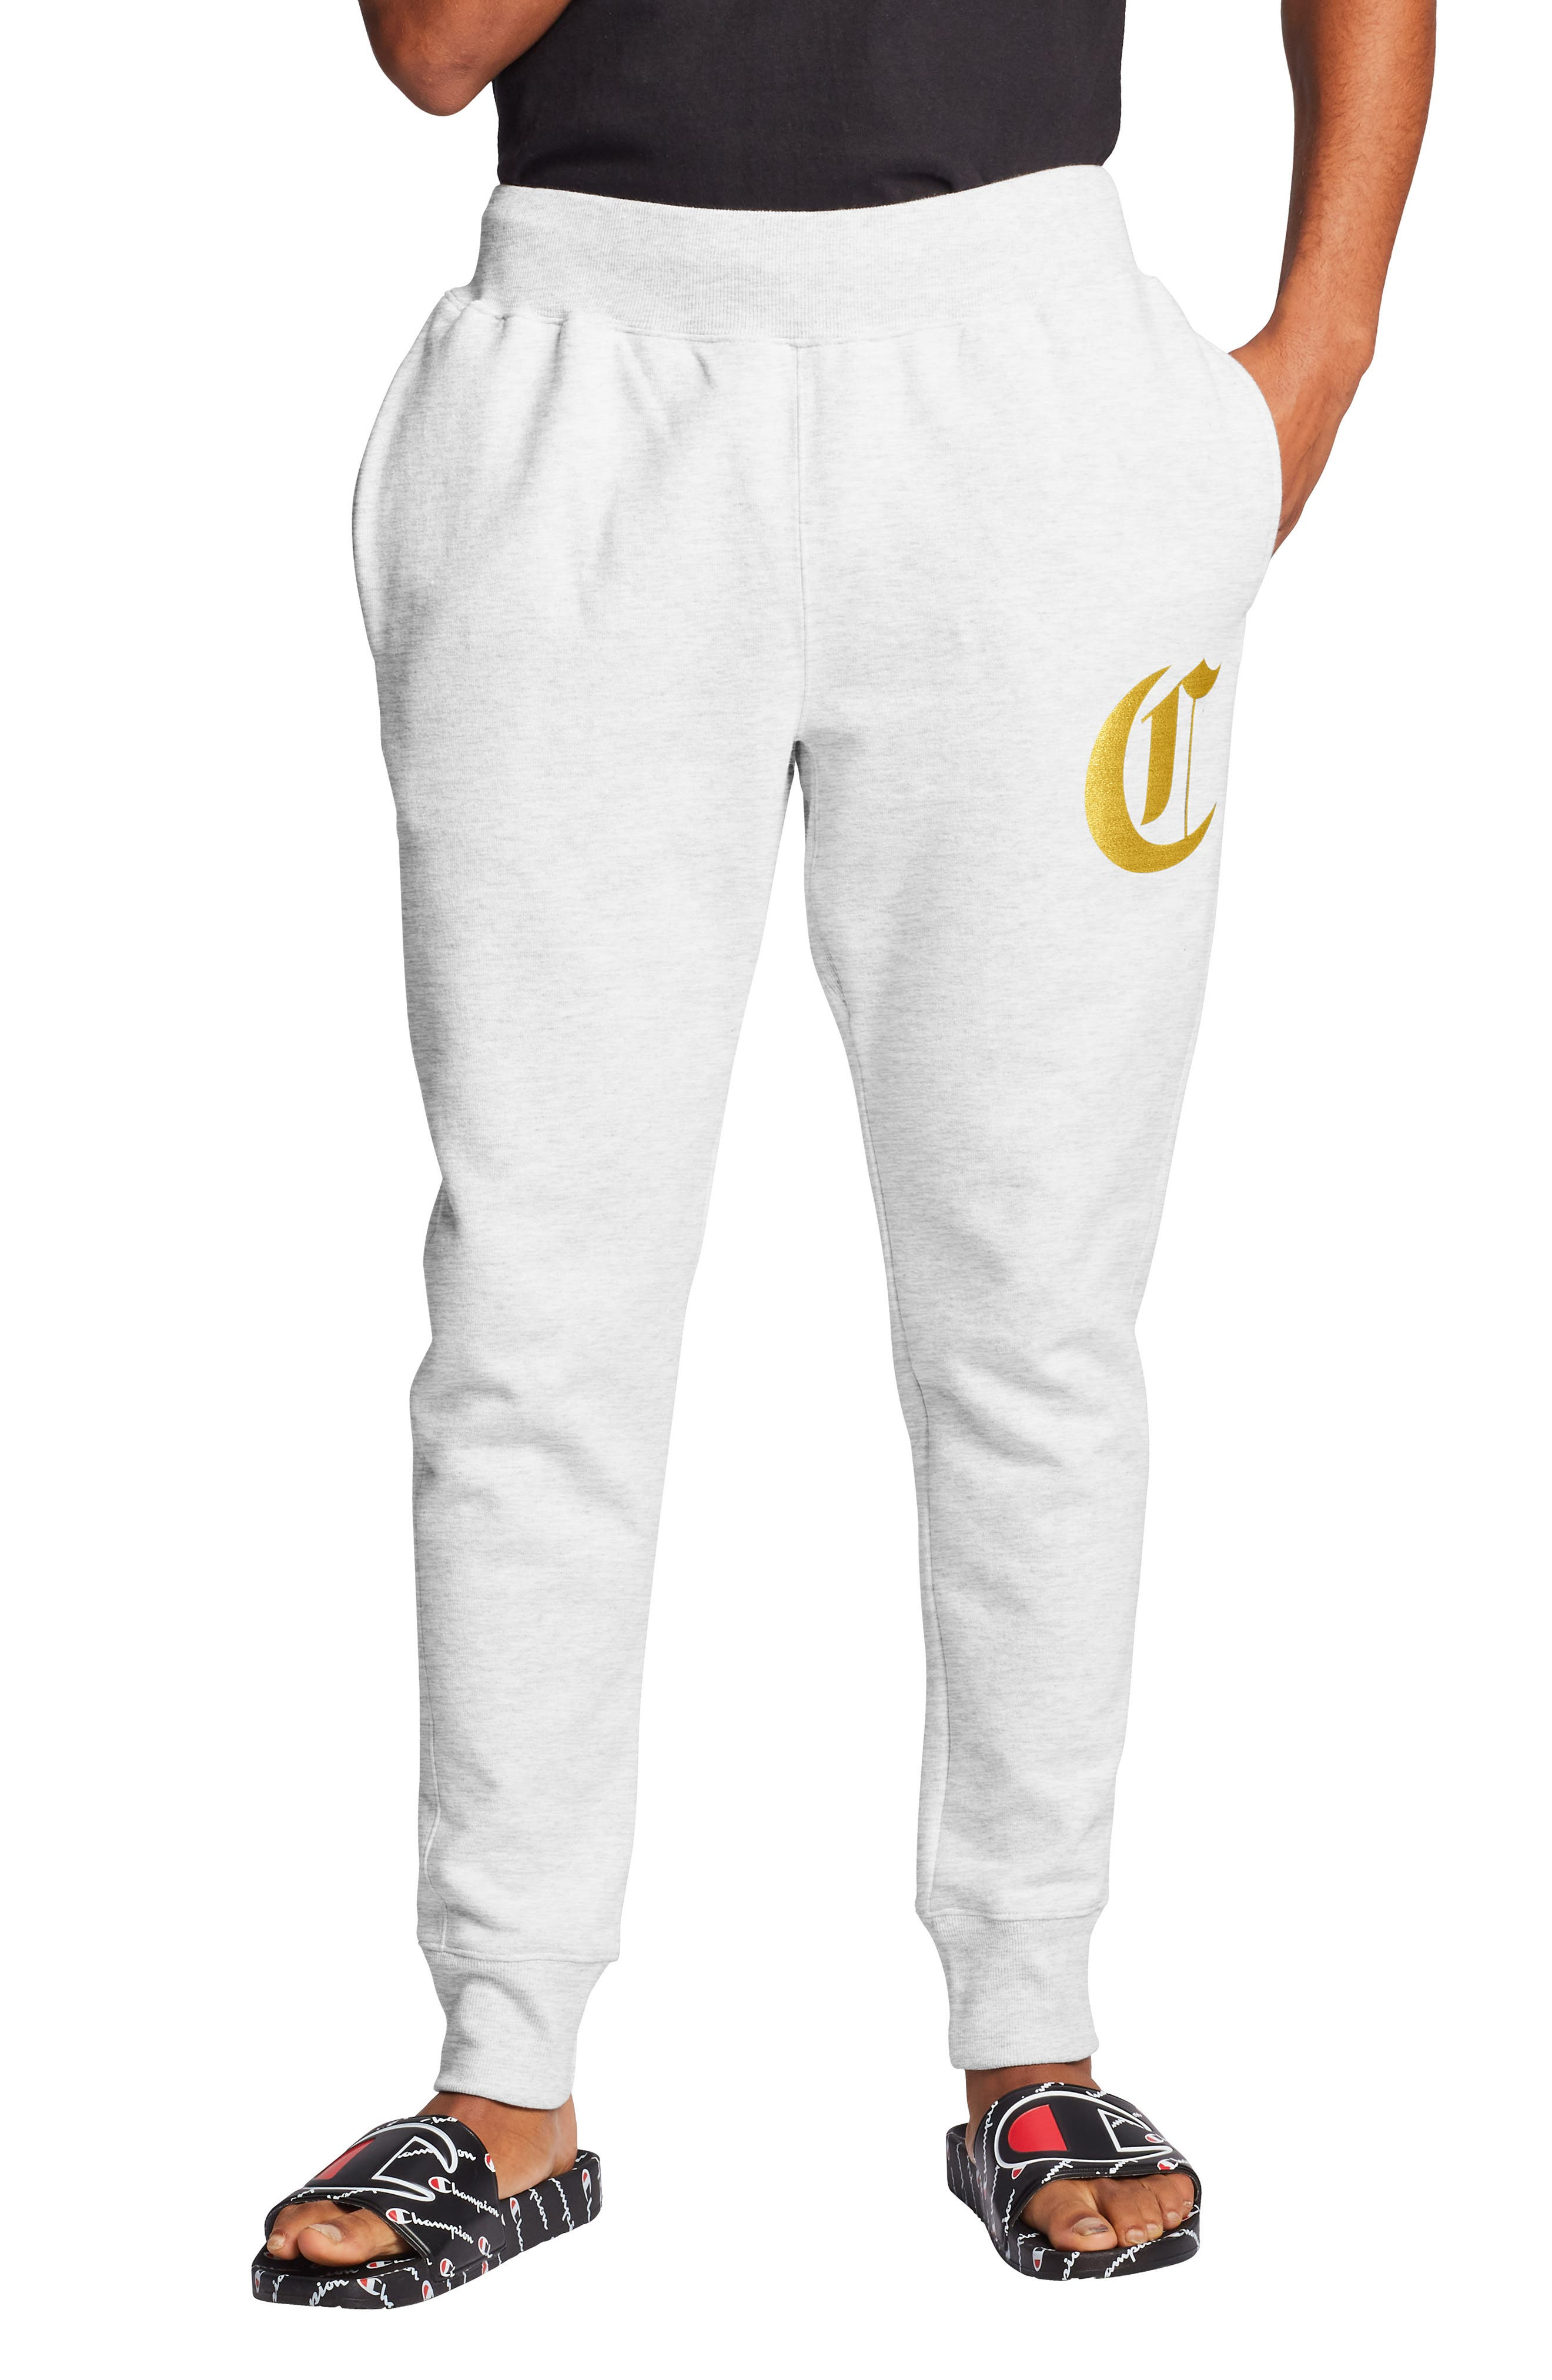 Men's Champion Old English Embroidered Logo Sweatpants